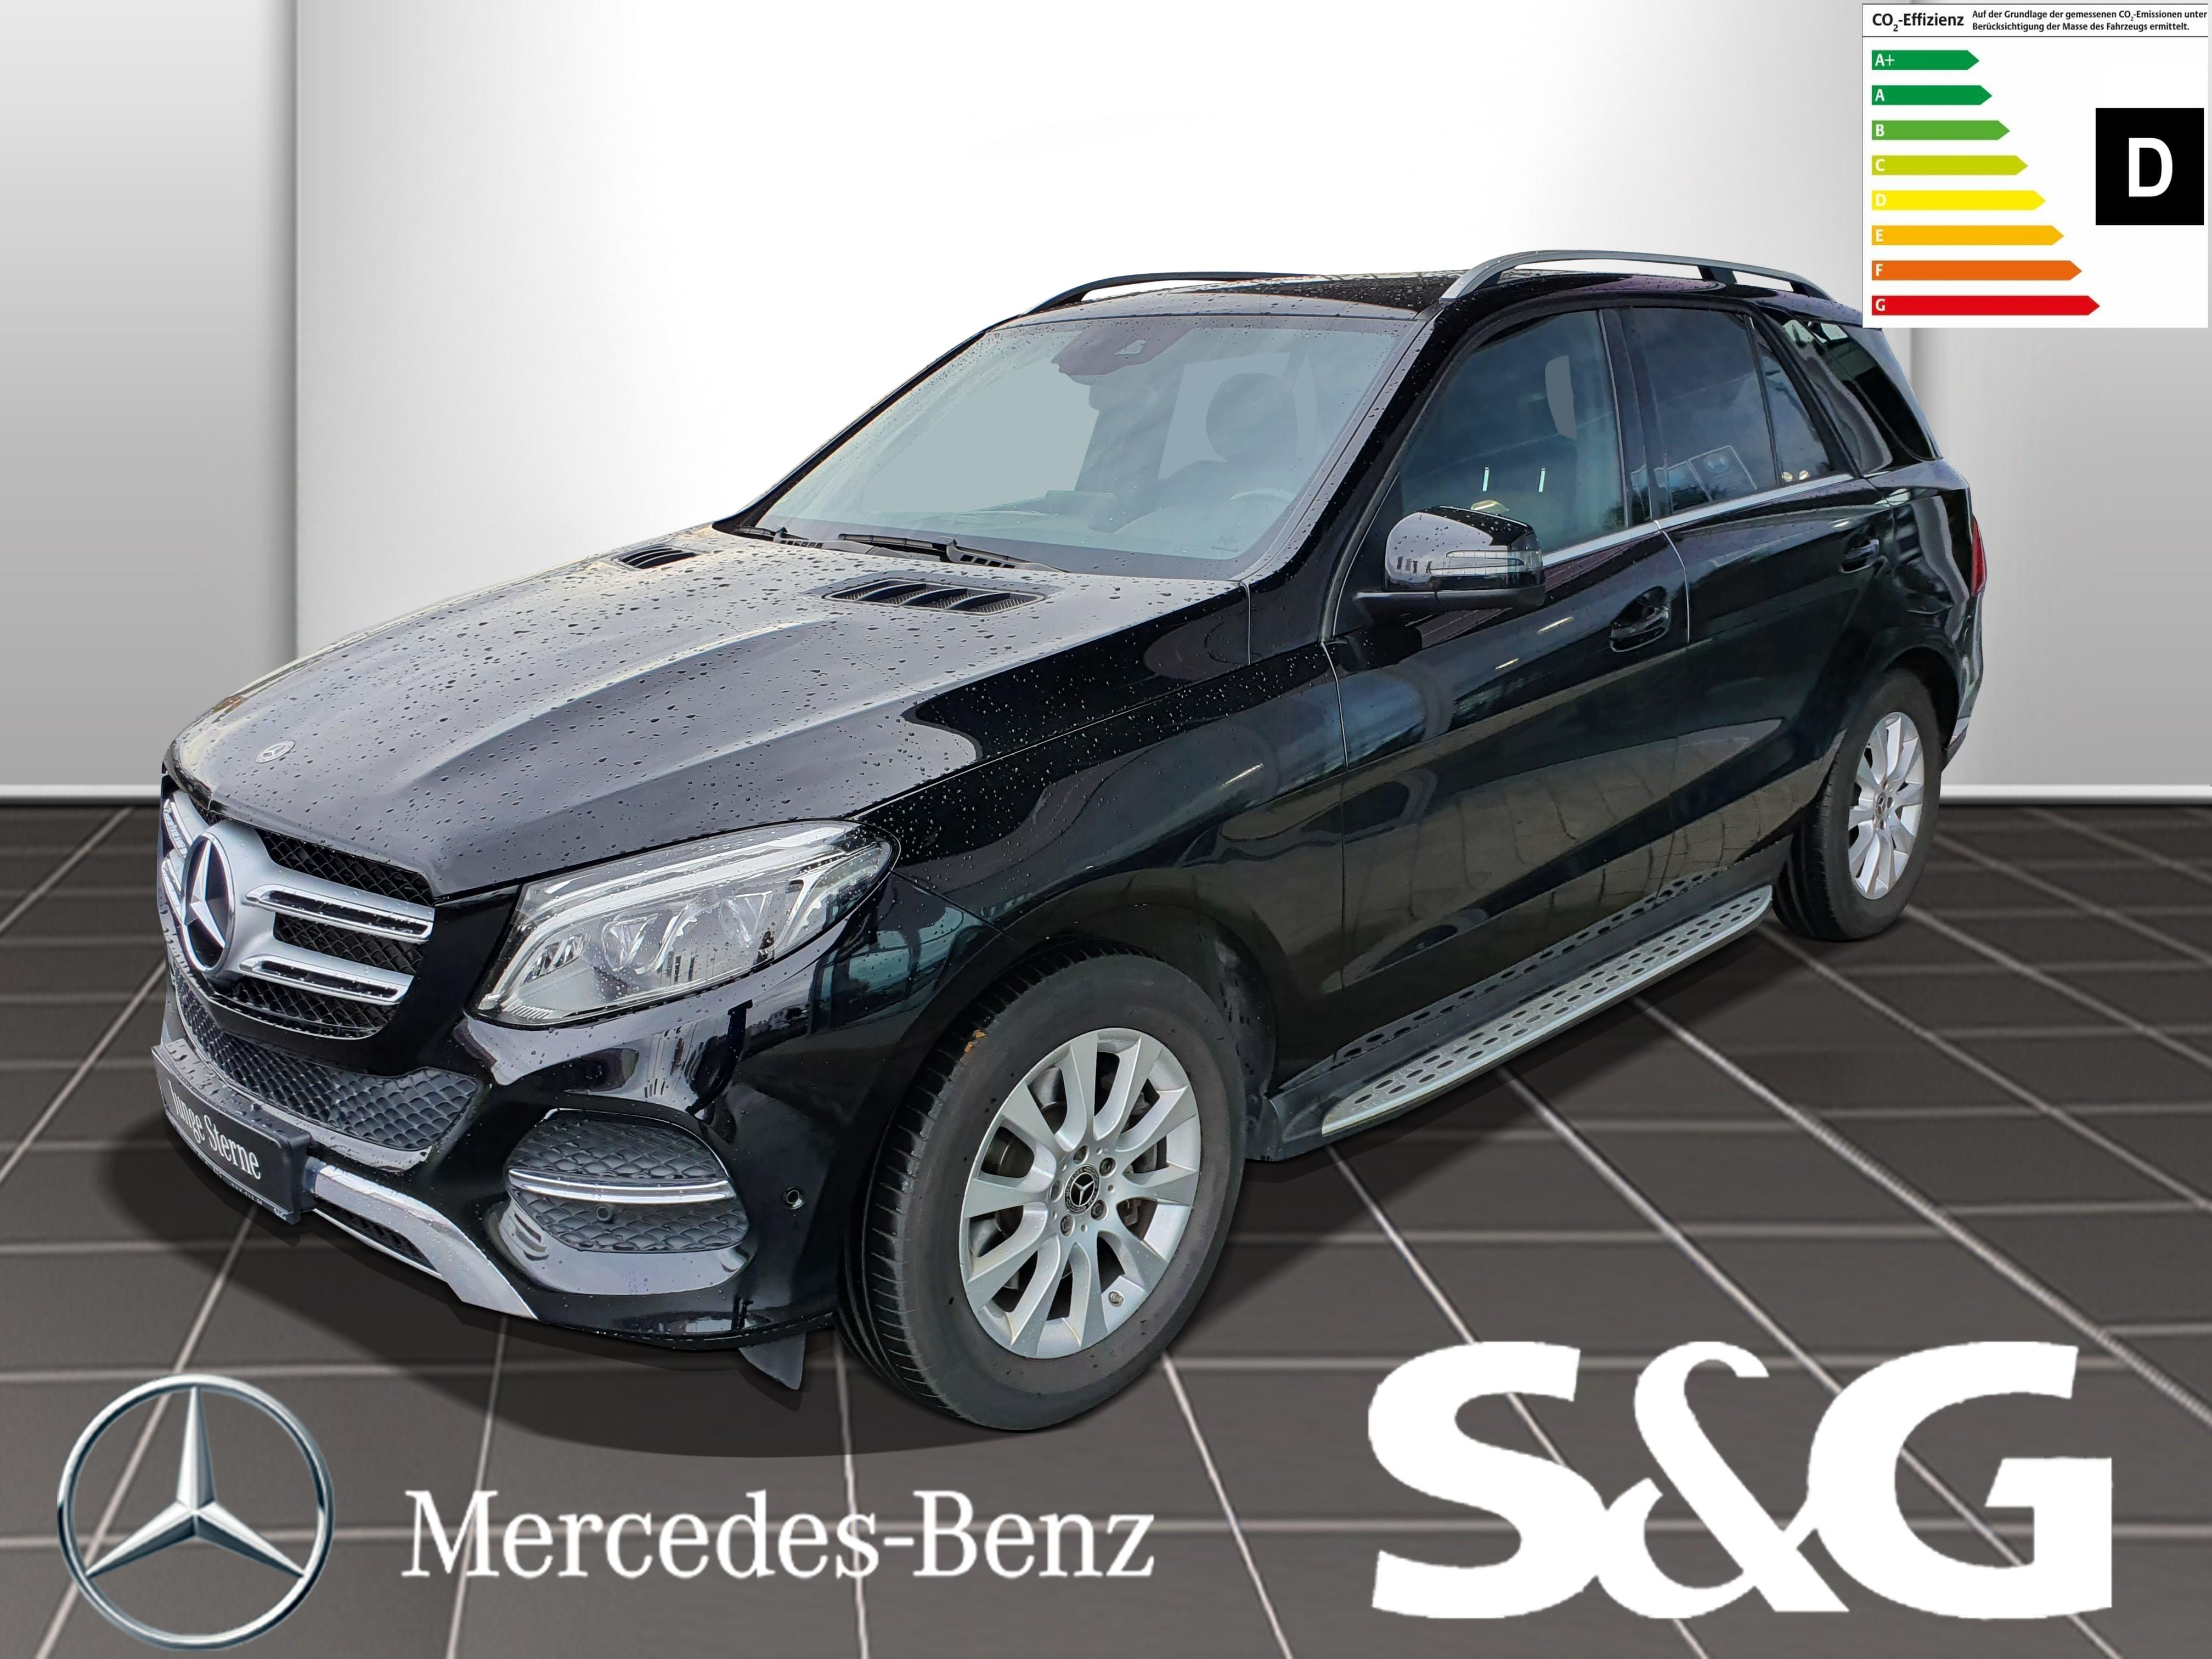 Mercedes-Benz GLE 400 4MATIC/LED/360°Kamera/THERMATIC/SoundSys, Jahr 2017, Benzin